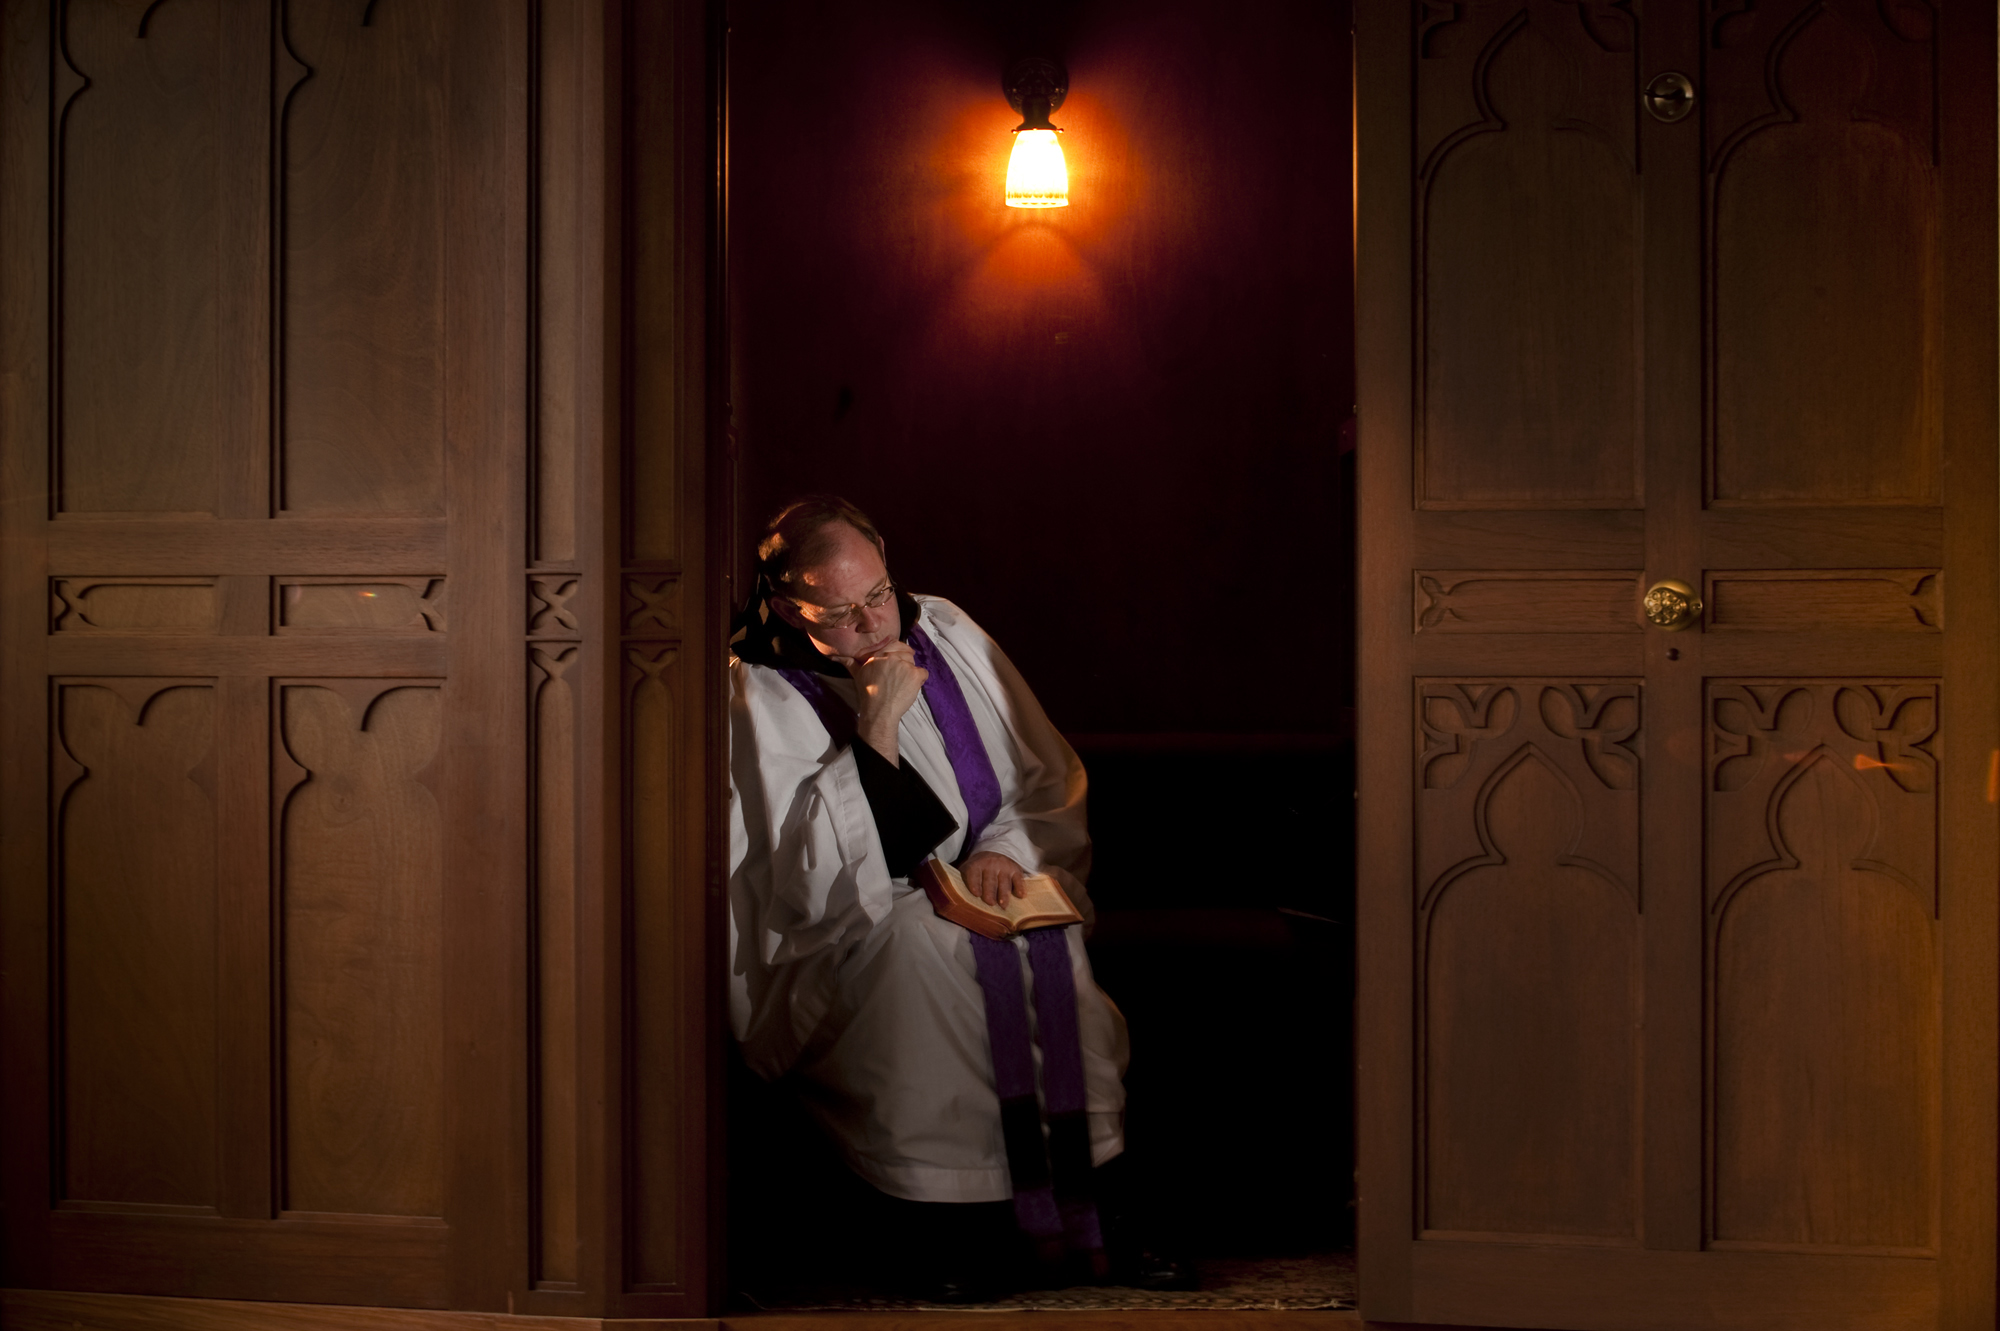 Sacrament Of Reconciliation Outside The Beltway